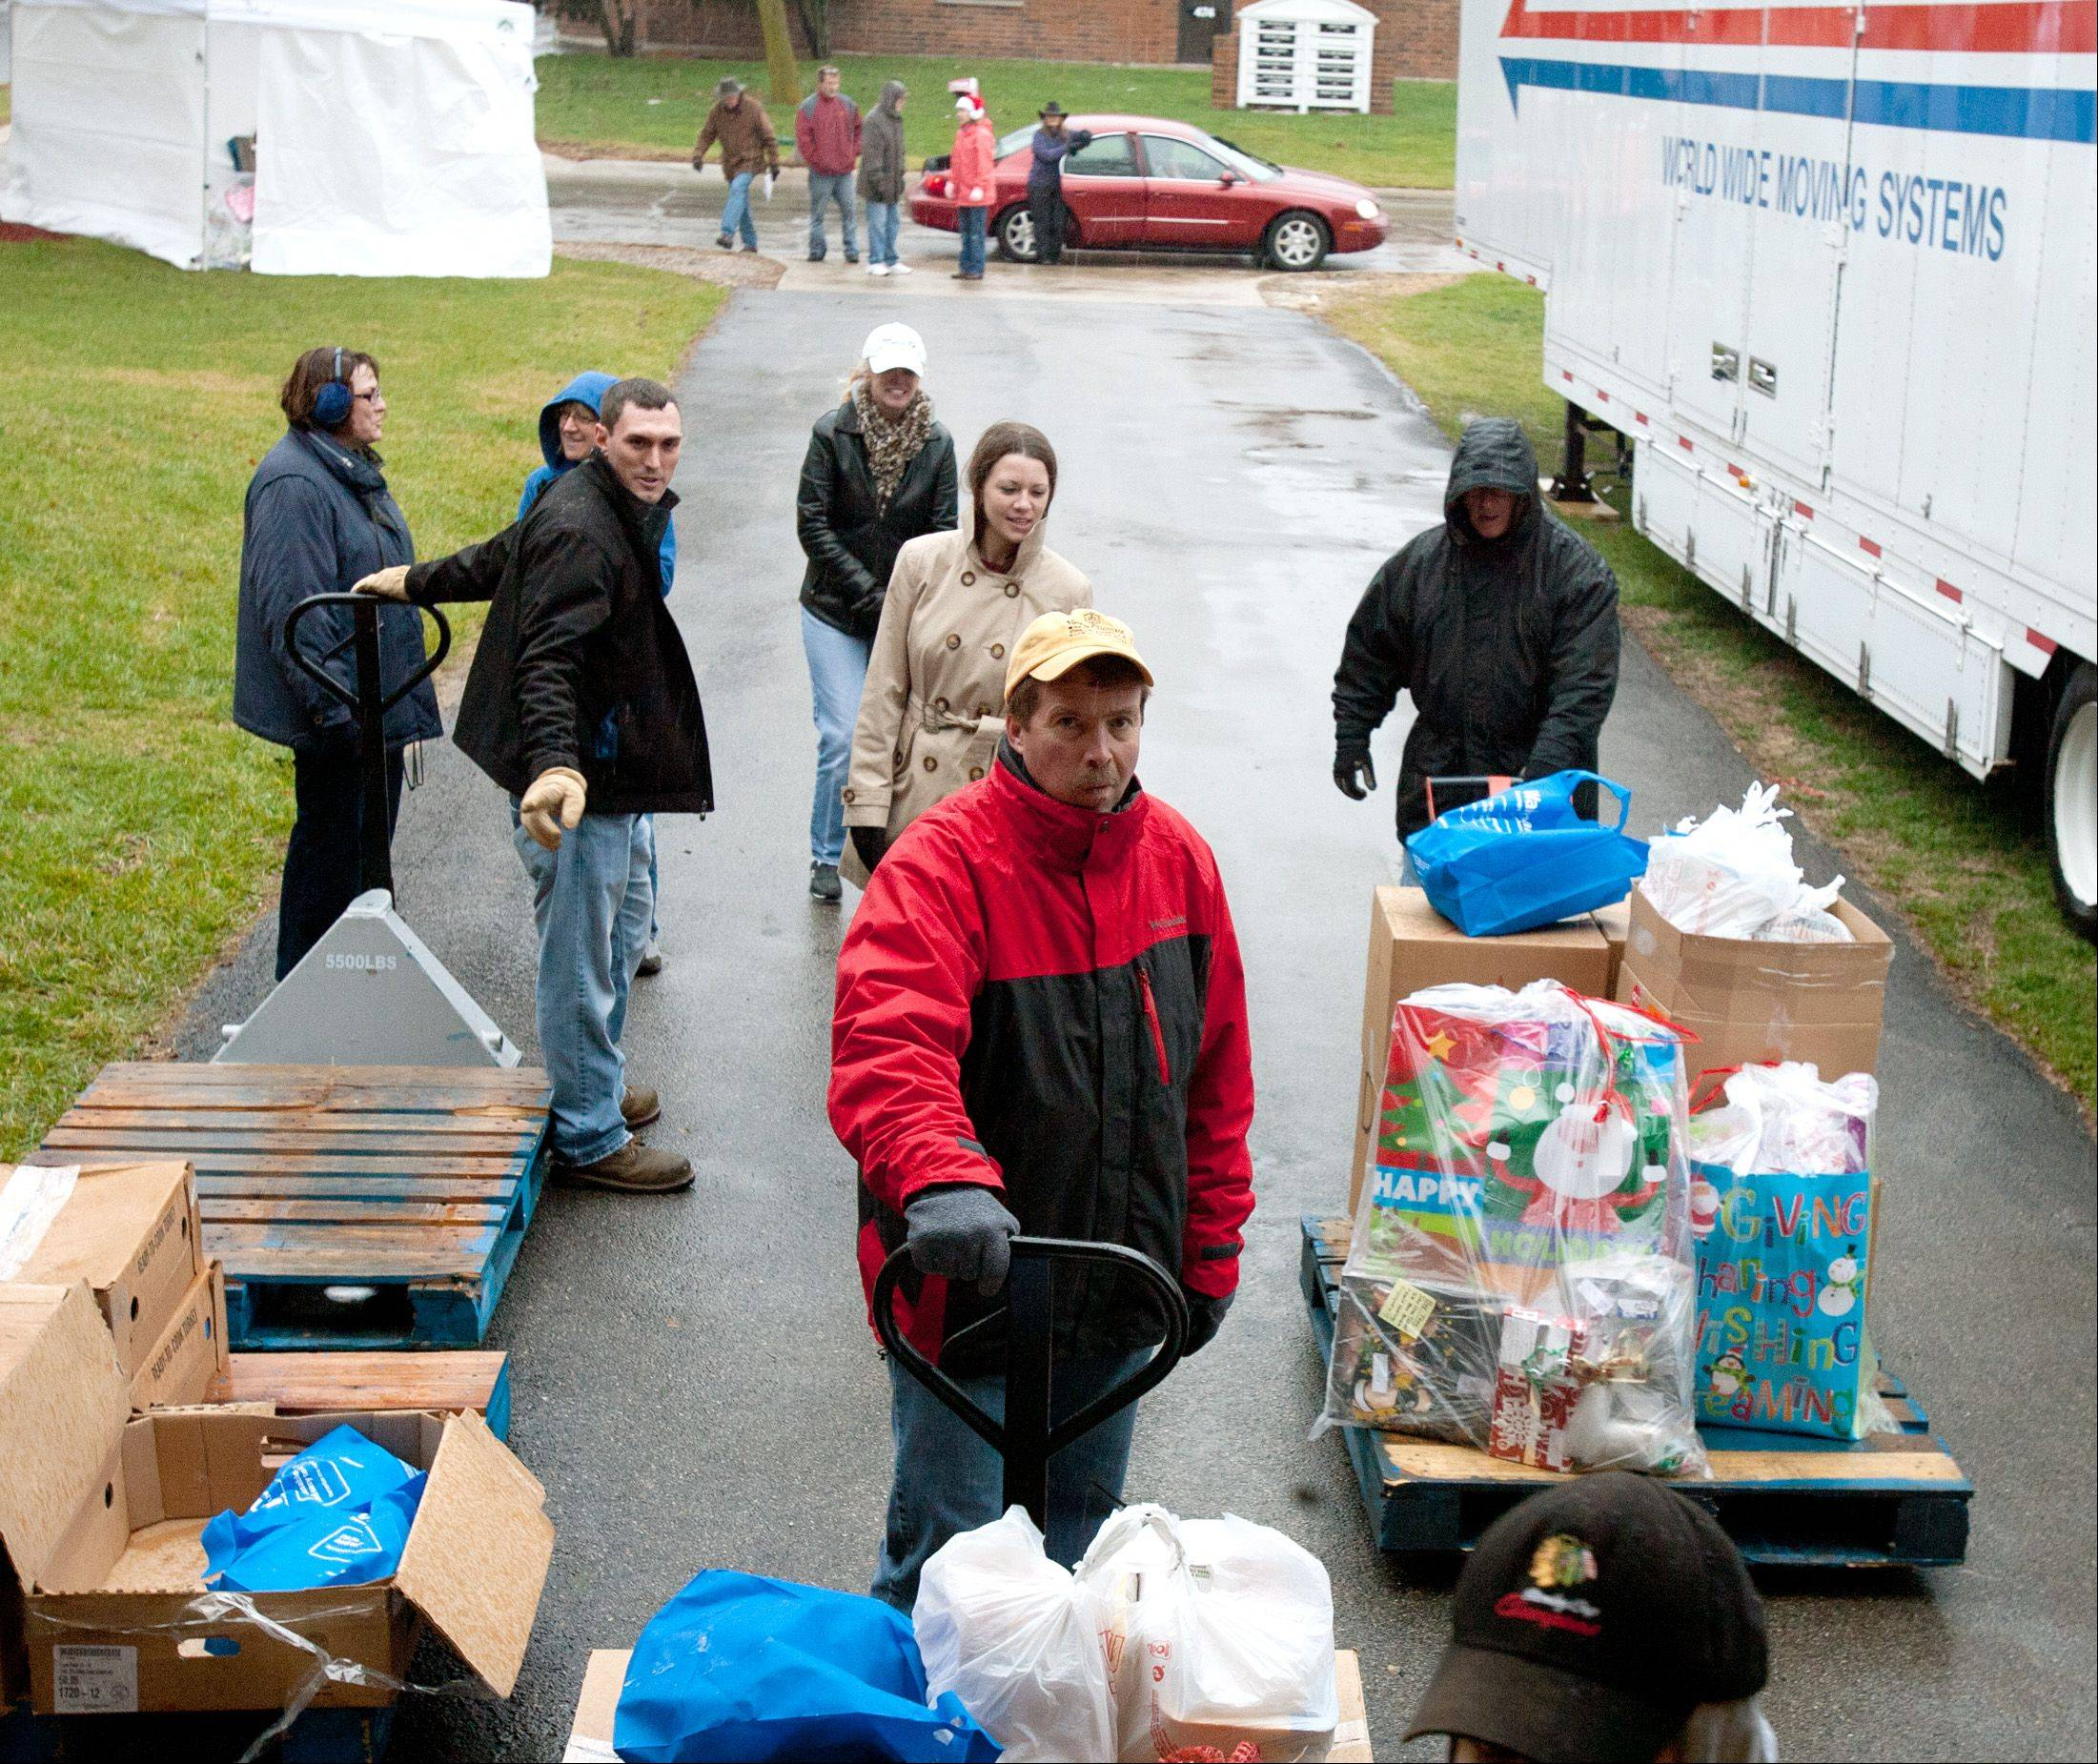 The Carol Stream-based Humanitarian Service Project provided holiday packages for more than 150 families in need this year.